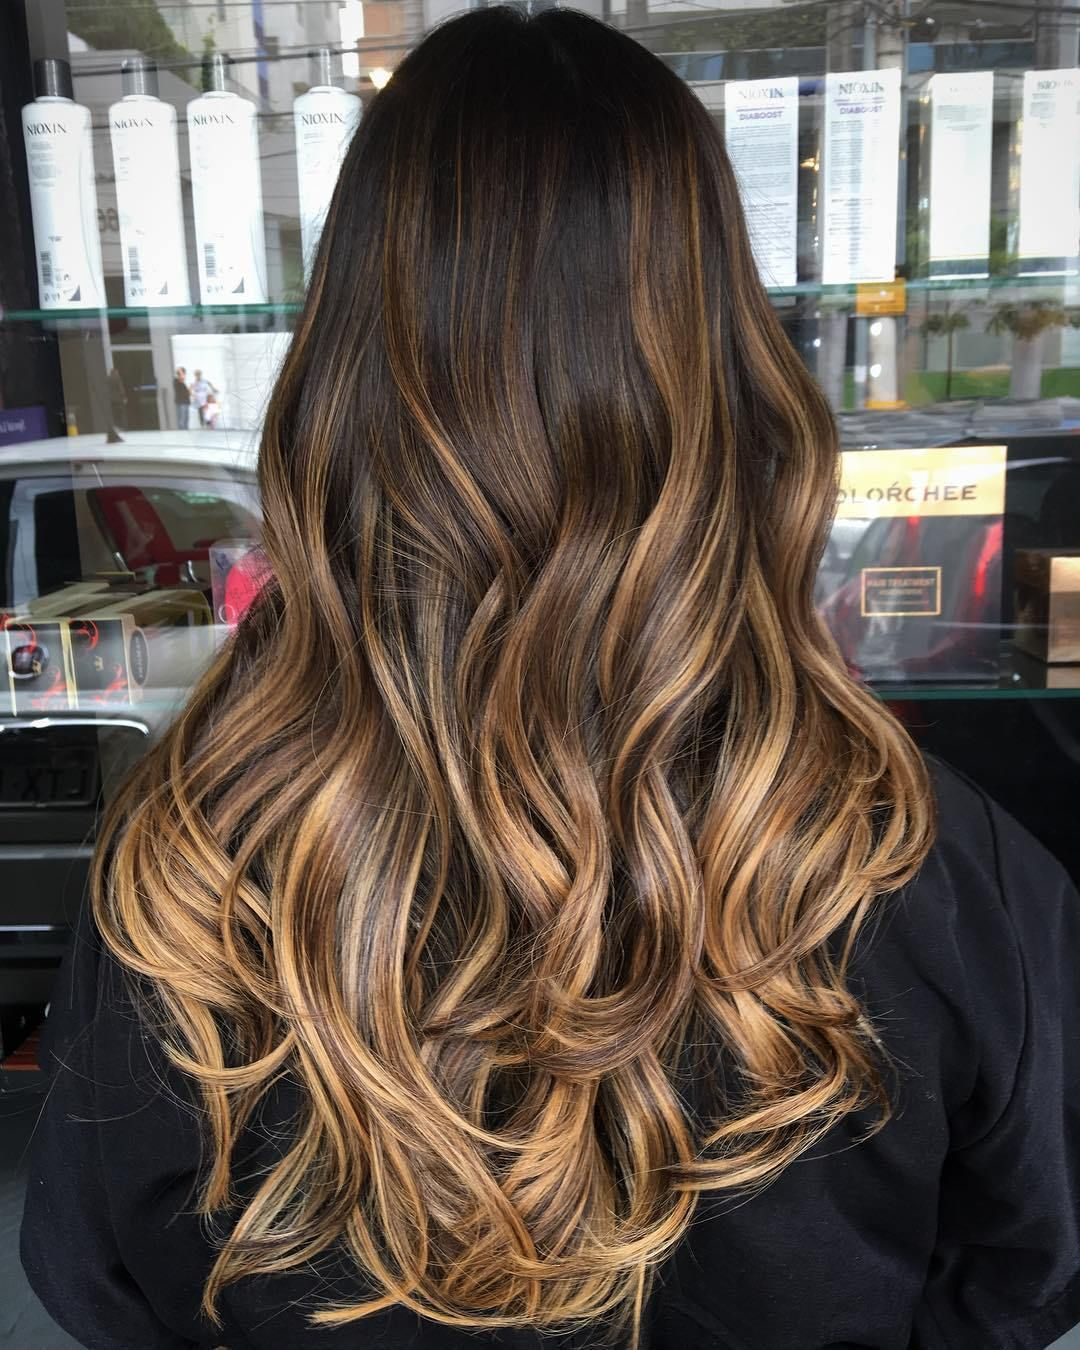 60 Hairstyles Featuring Dark Brown Hair With Highlights Hair Styles Long Hair Styles Natural Dark Hair